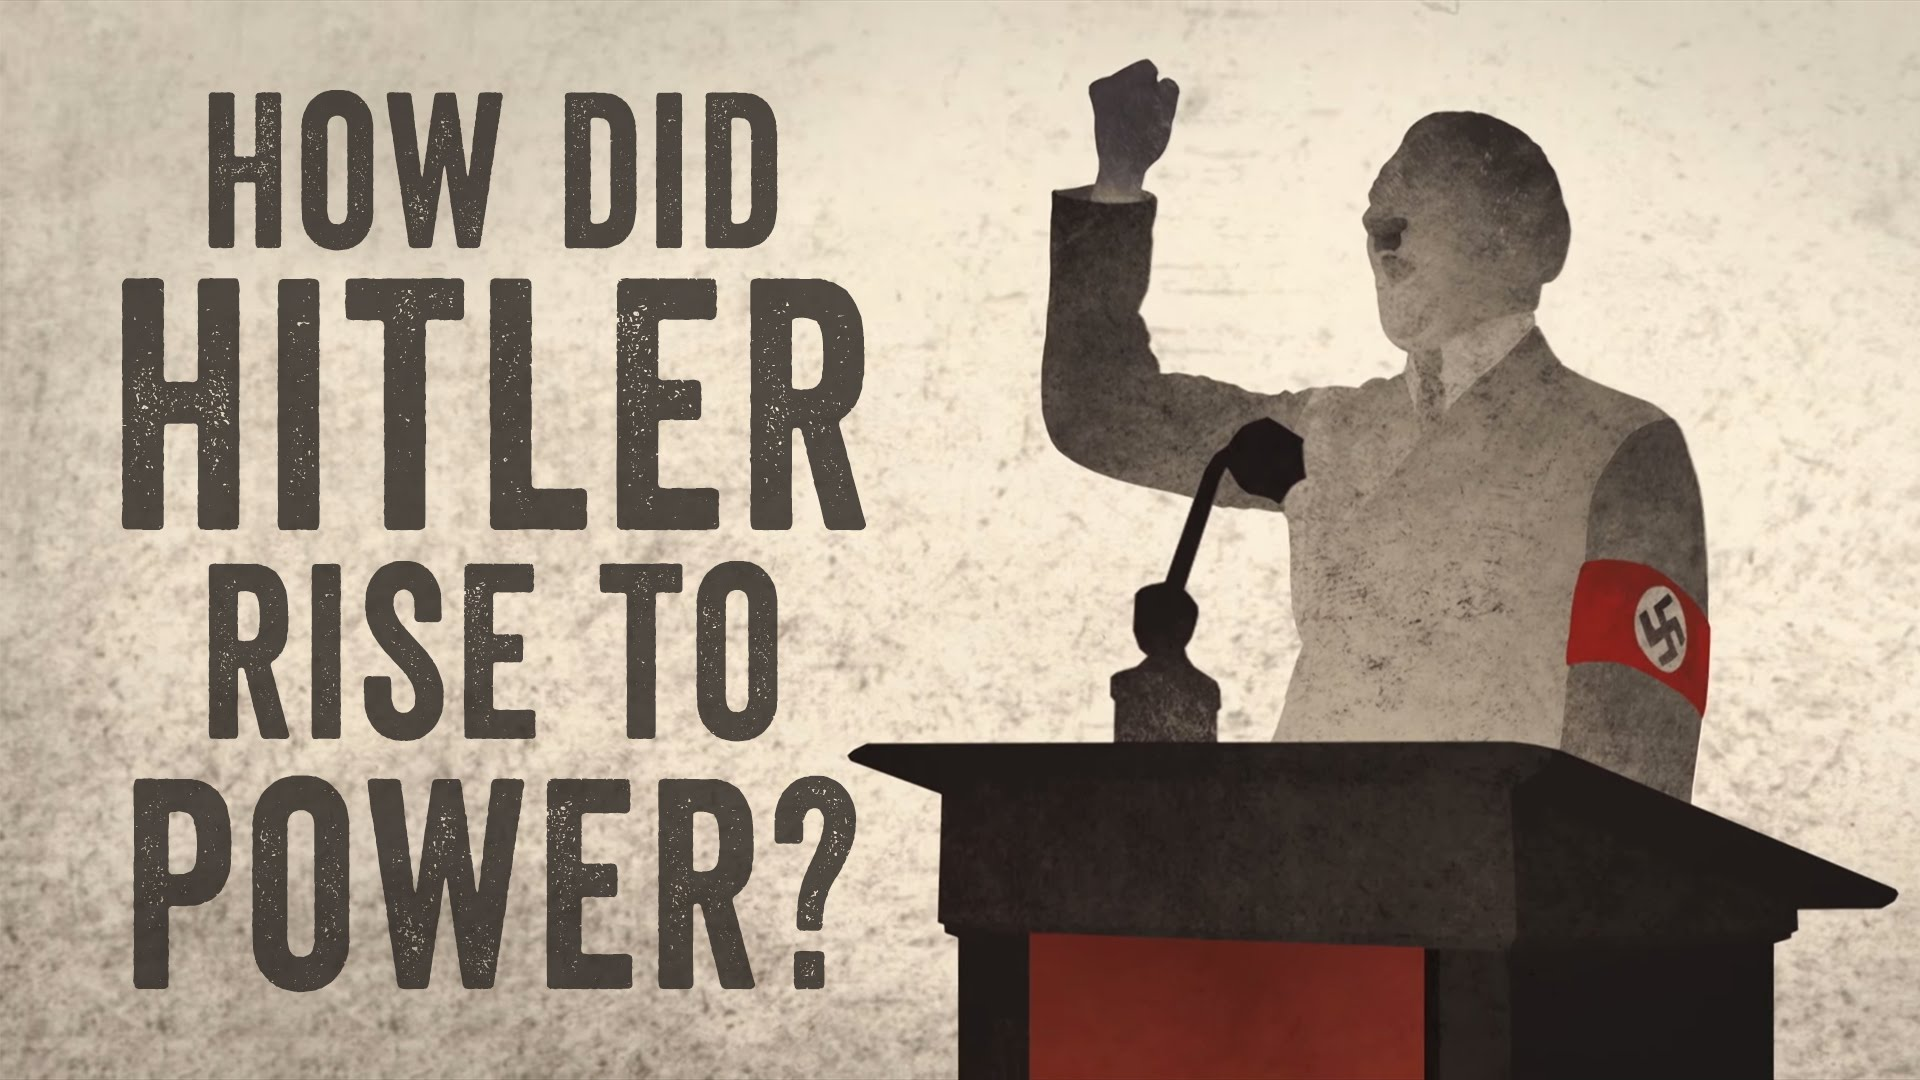 the contributing factors to hitlers rise in power Part 17 of a complete online history, the rise of adolf hitler - from unknown to dictator of germany, at the history place great depression begins when the stock market collapsed on wall street on tuesday, october 29, 1929, it sent financial markets worldwide into a tailspin with disastrous effects.